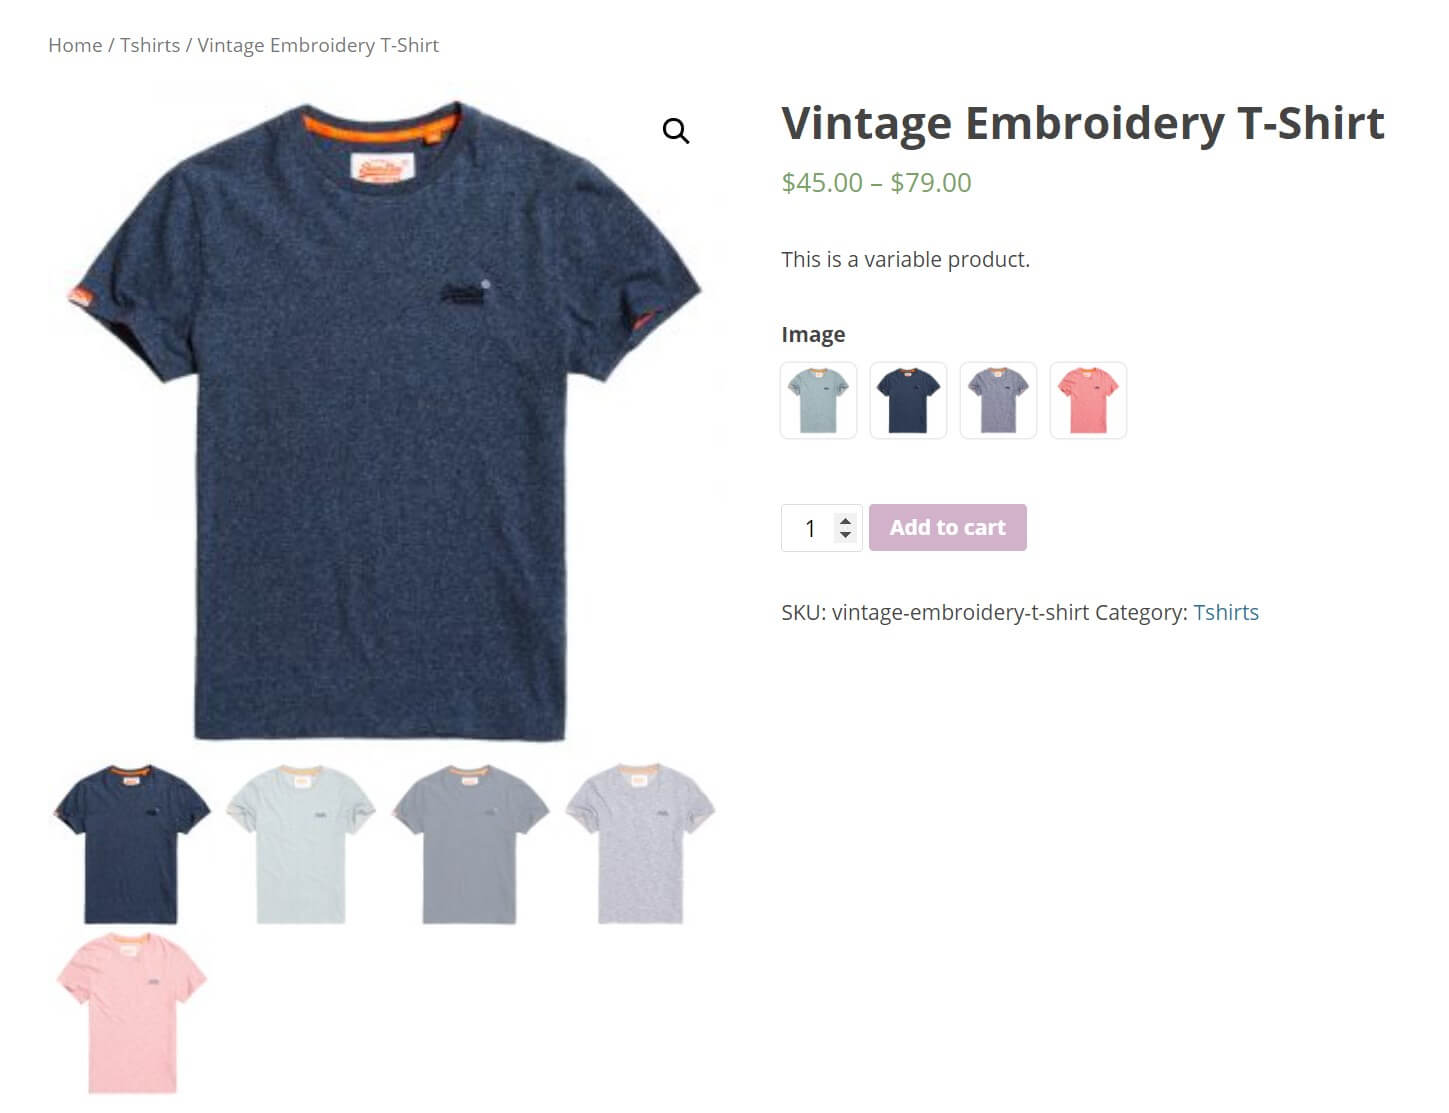 How to Optimize Your WooCommerce Variable Products and Improve Conversions (In 3 Steps)